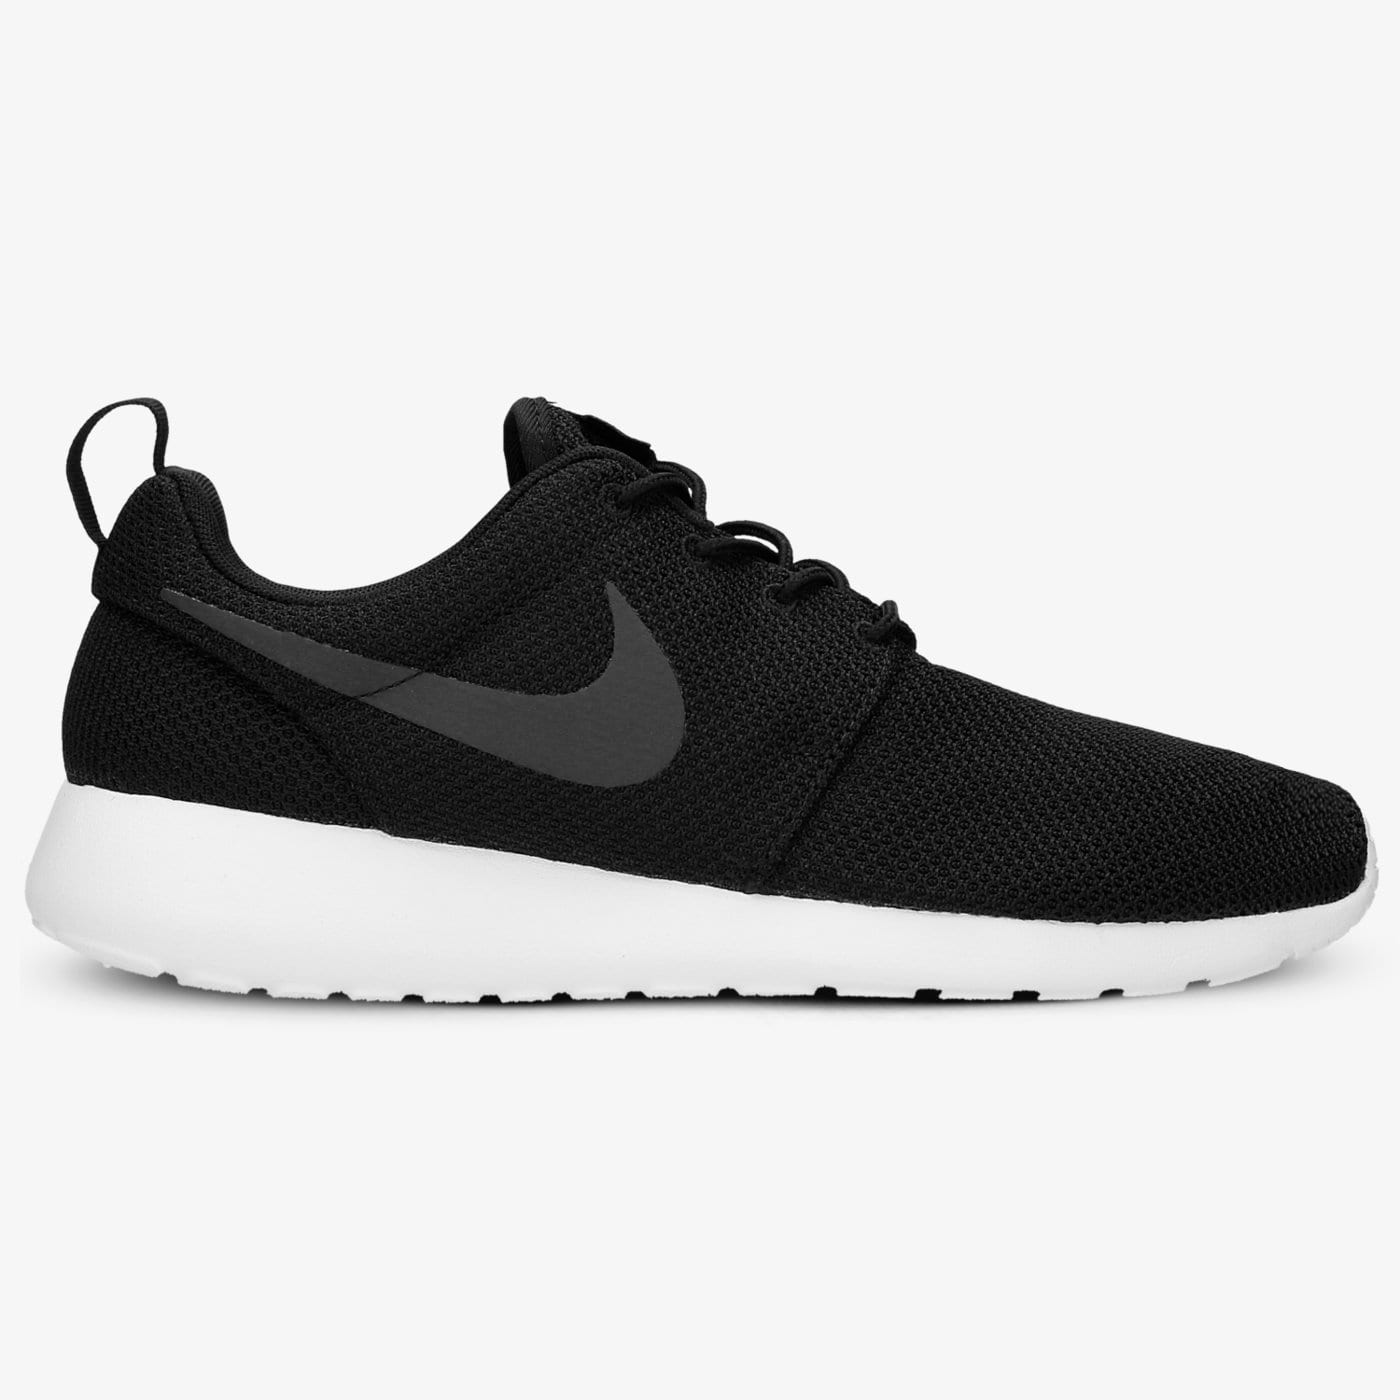 NIKE ROSHE RUN 46, US12, UK11, all black EUR 19,29